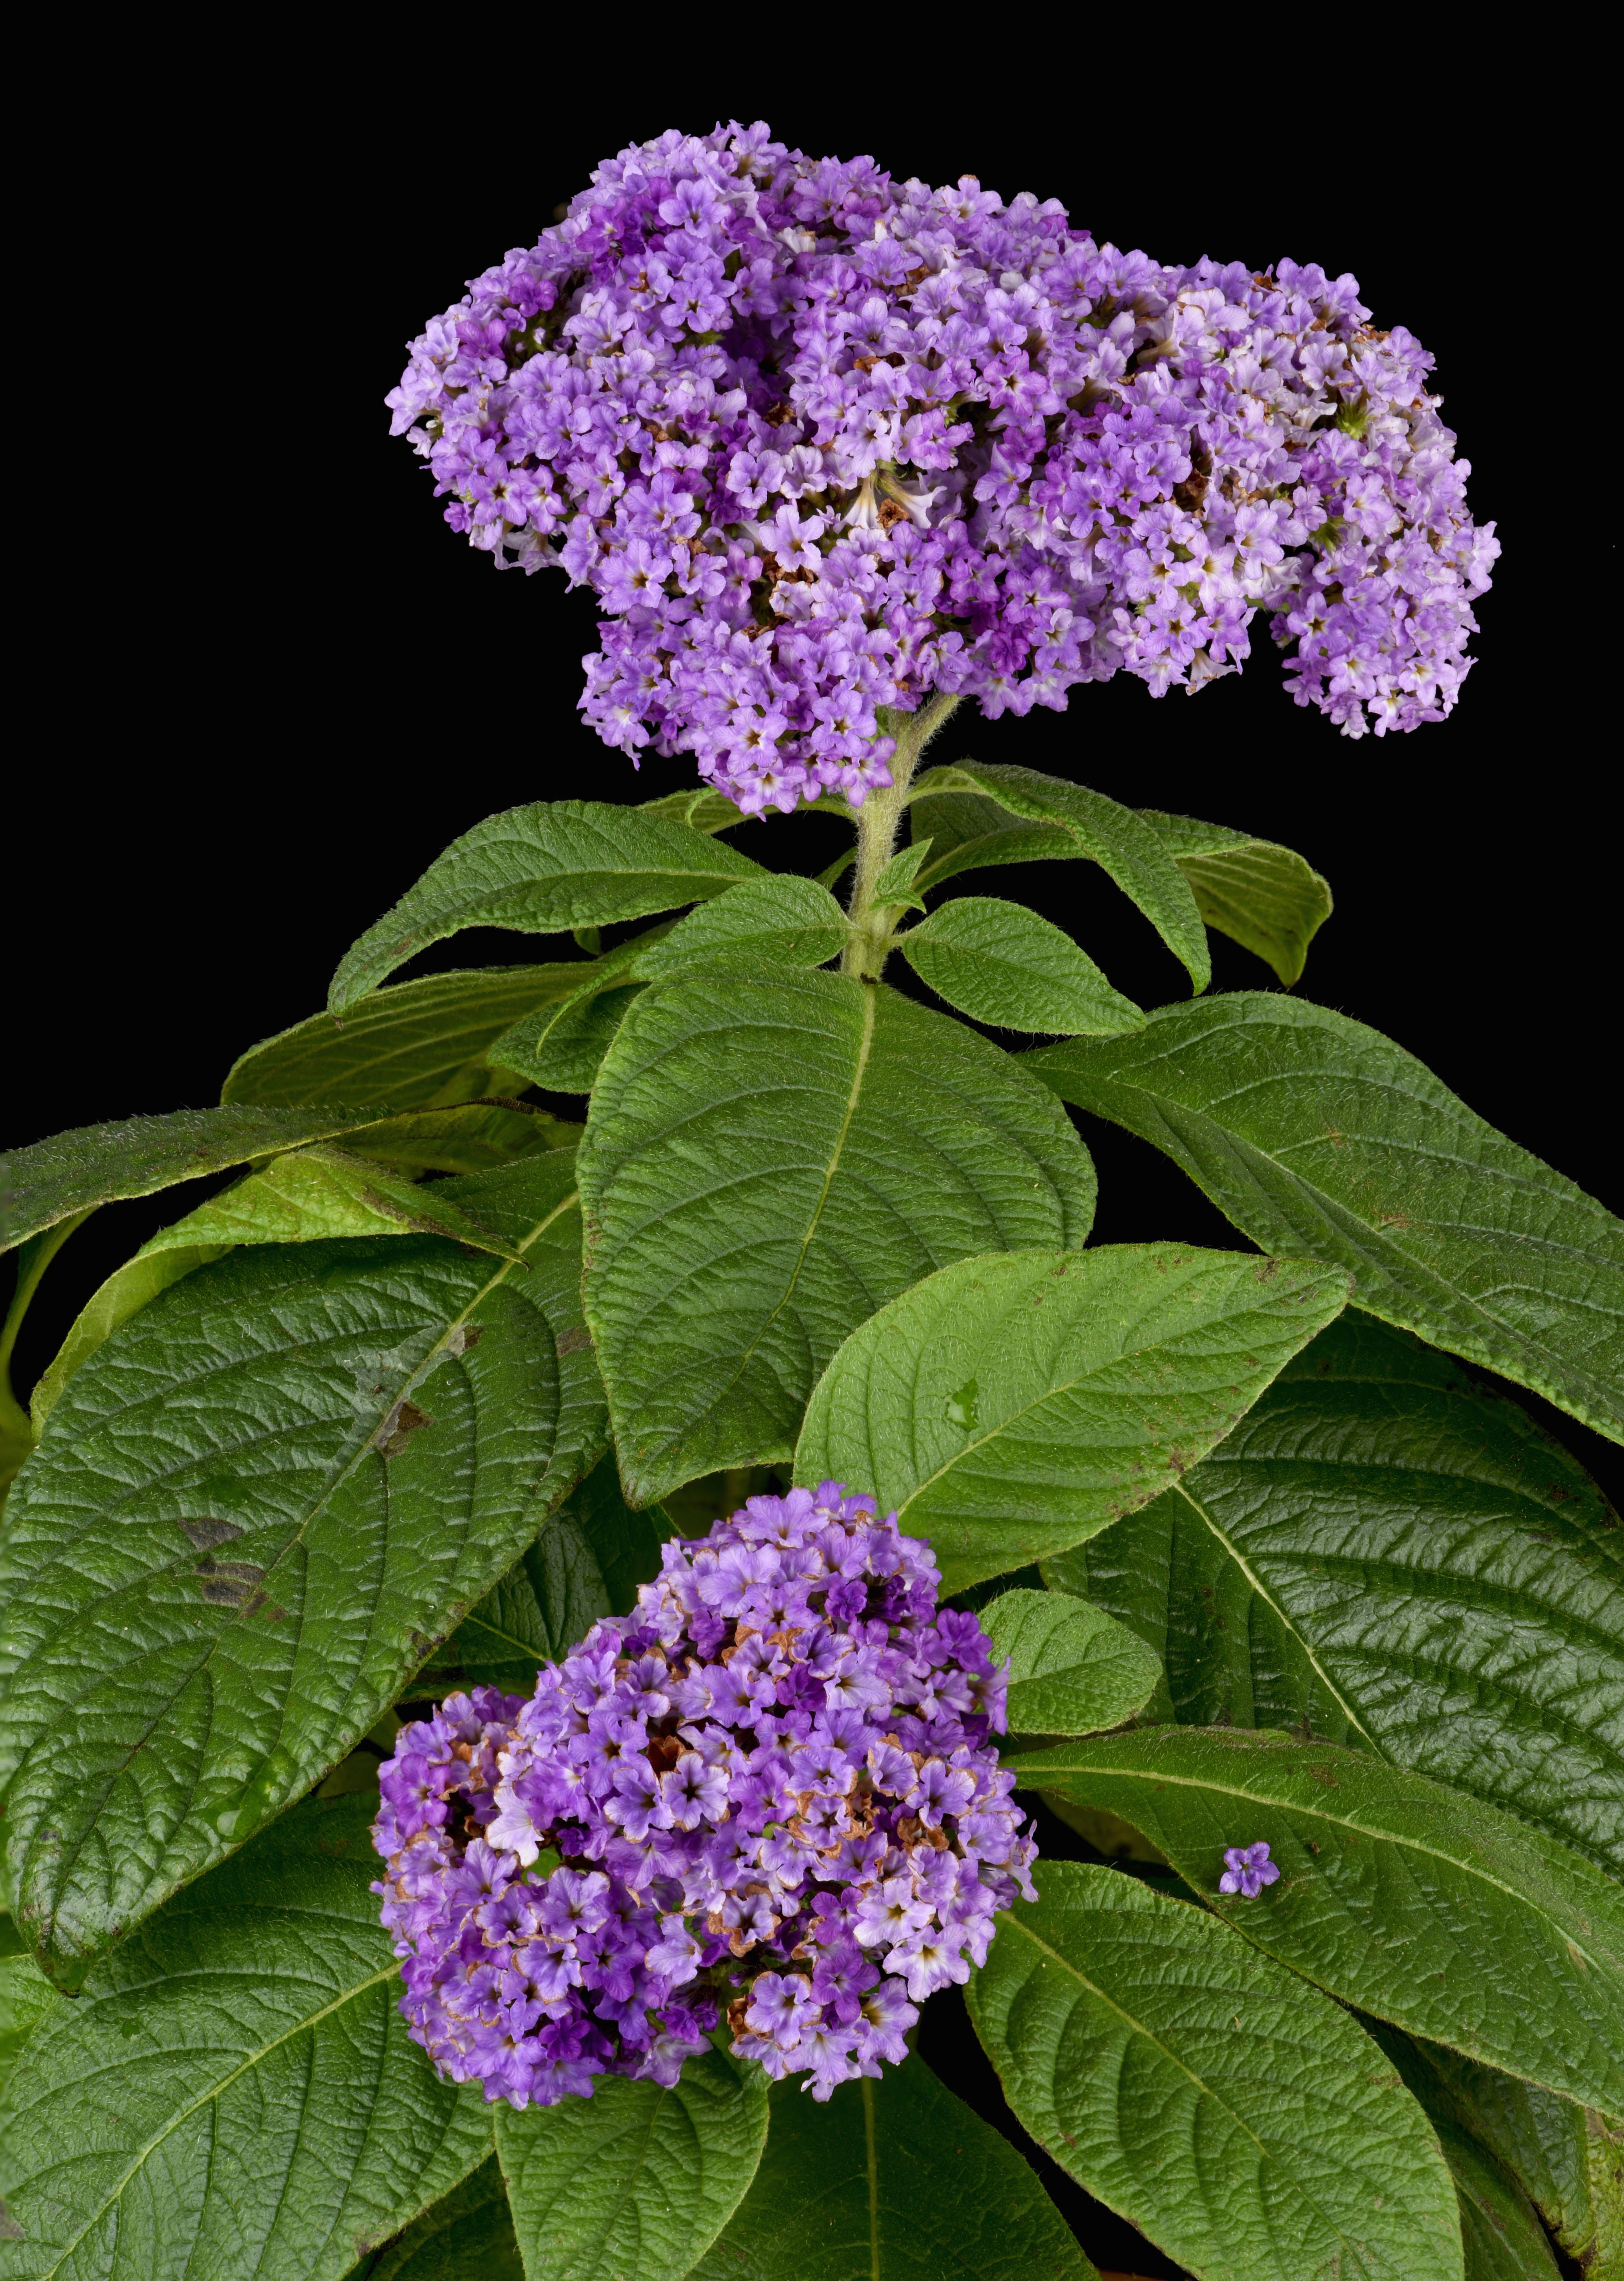 Heliotrope - flowers with the aroma of cherry pie